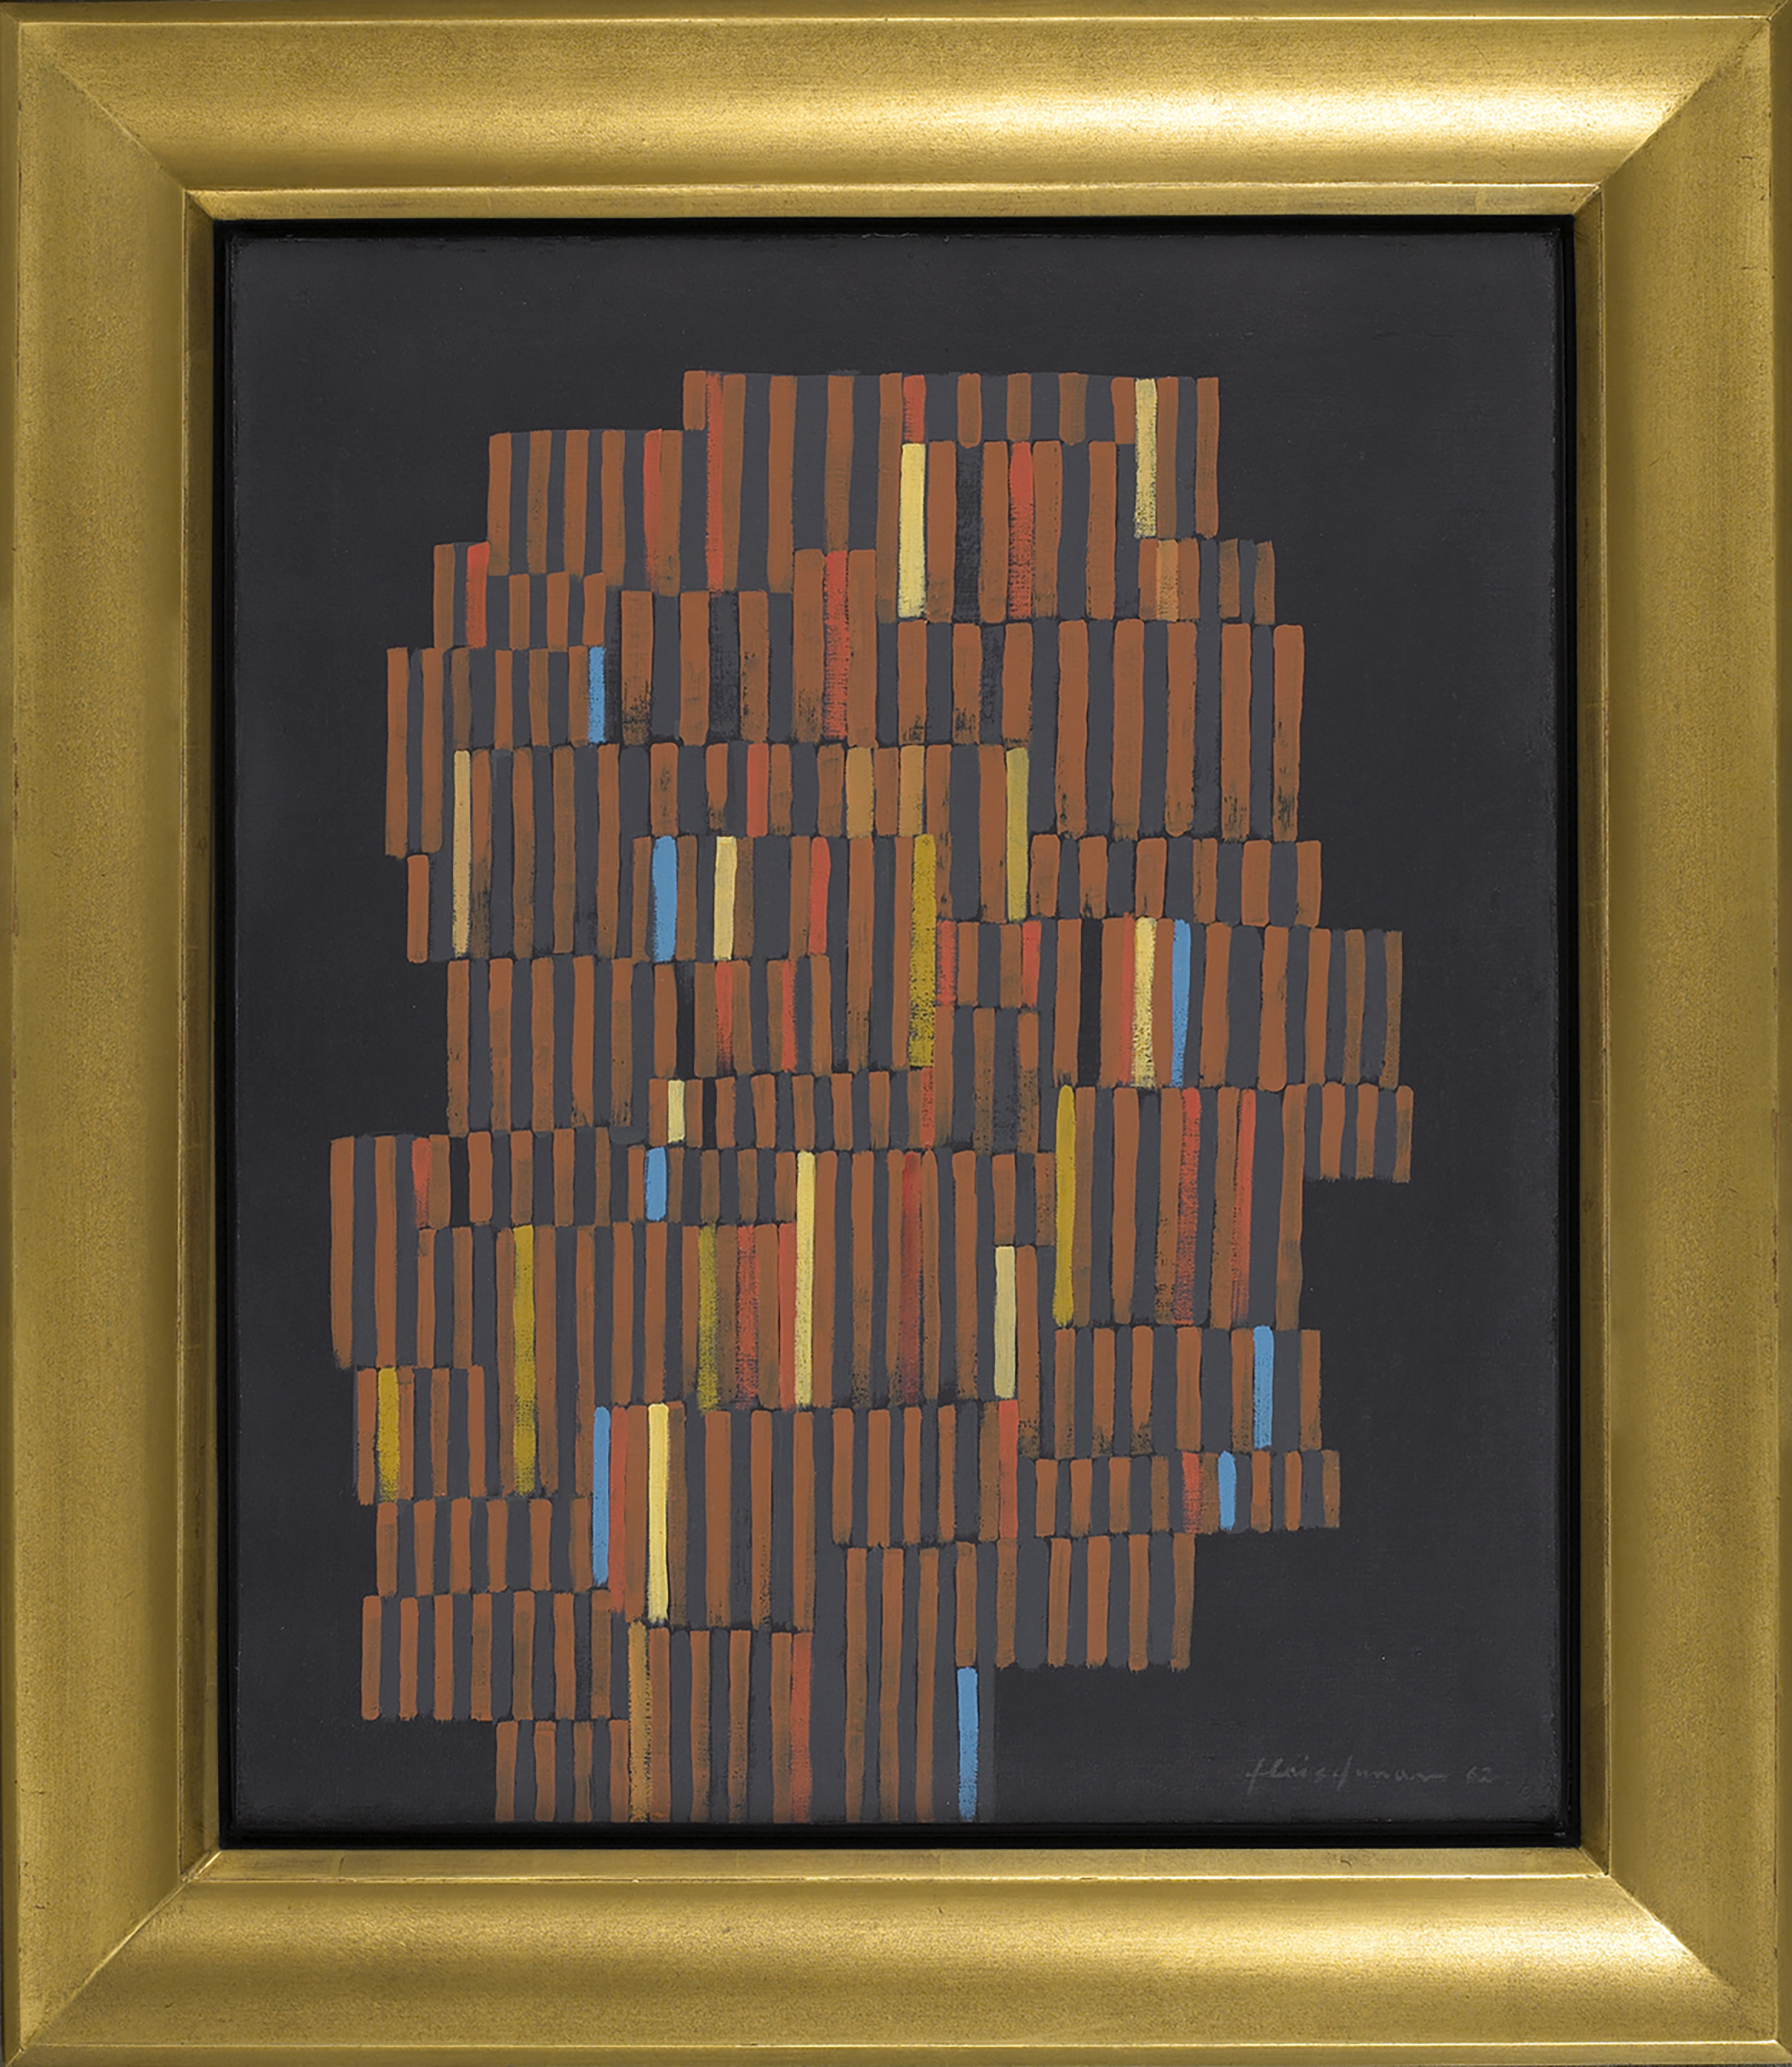 Untitled  , Oil on canvas, 1962, 24 x 20 inches